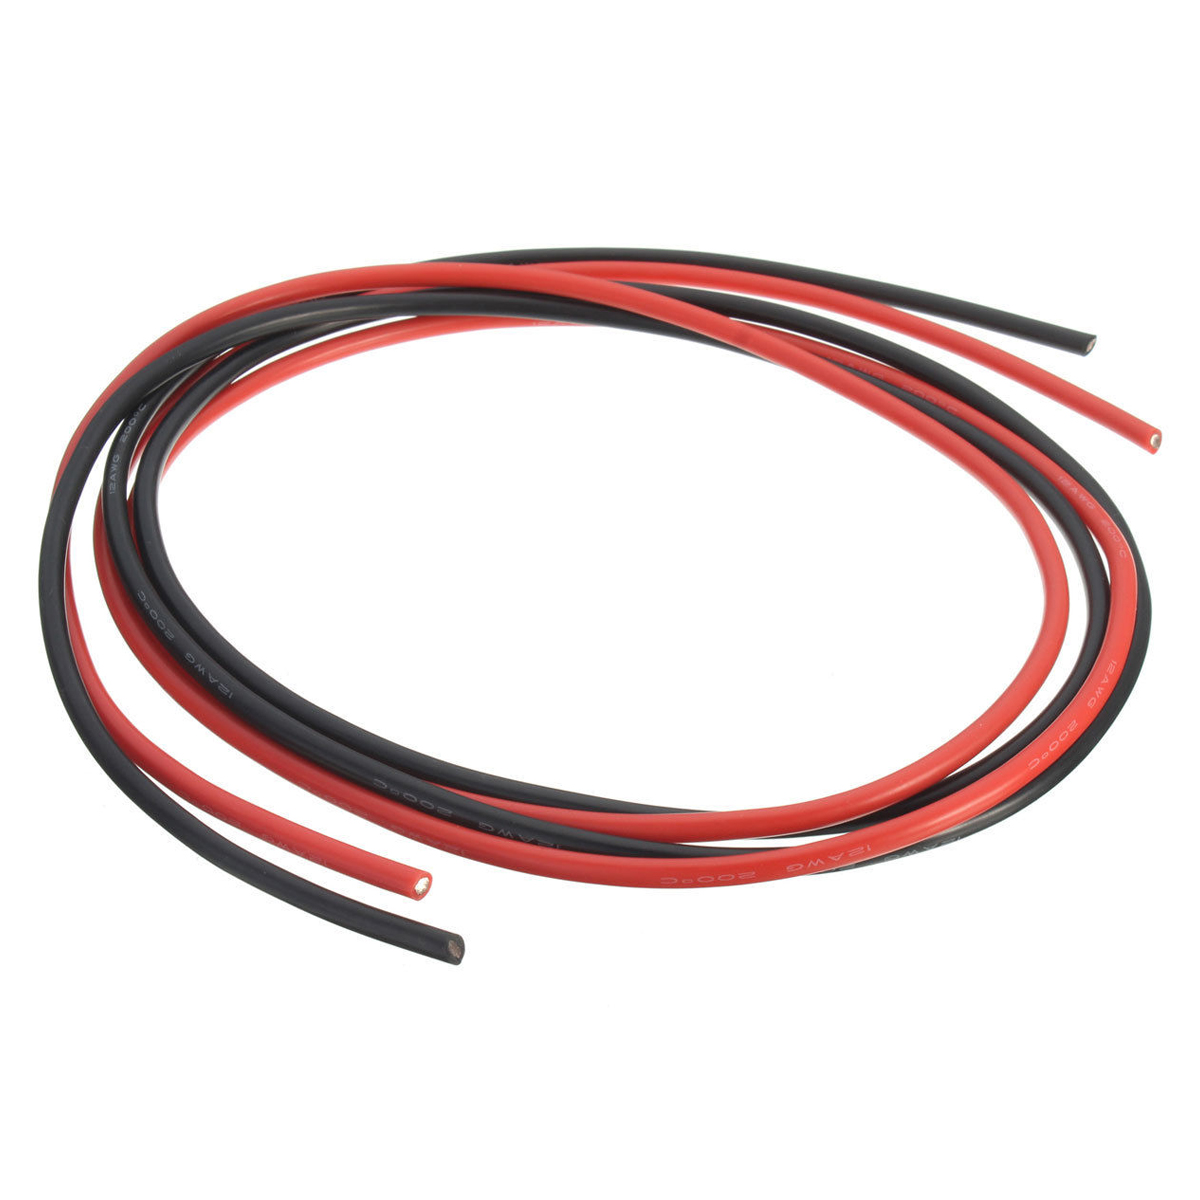 MACH 12 AWG 10 Feet (3m) Gauge Silicone Wire Flexible Stranded Copper Cables for RC Black+Red 14awg gauge silicone wire flexible stranded copper cables 5m for rc black red